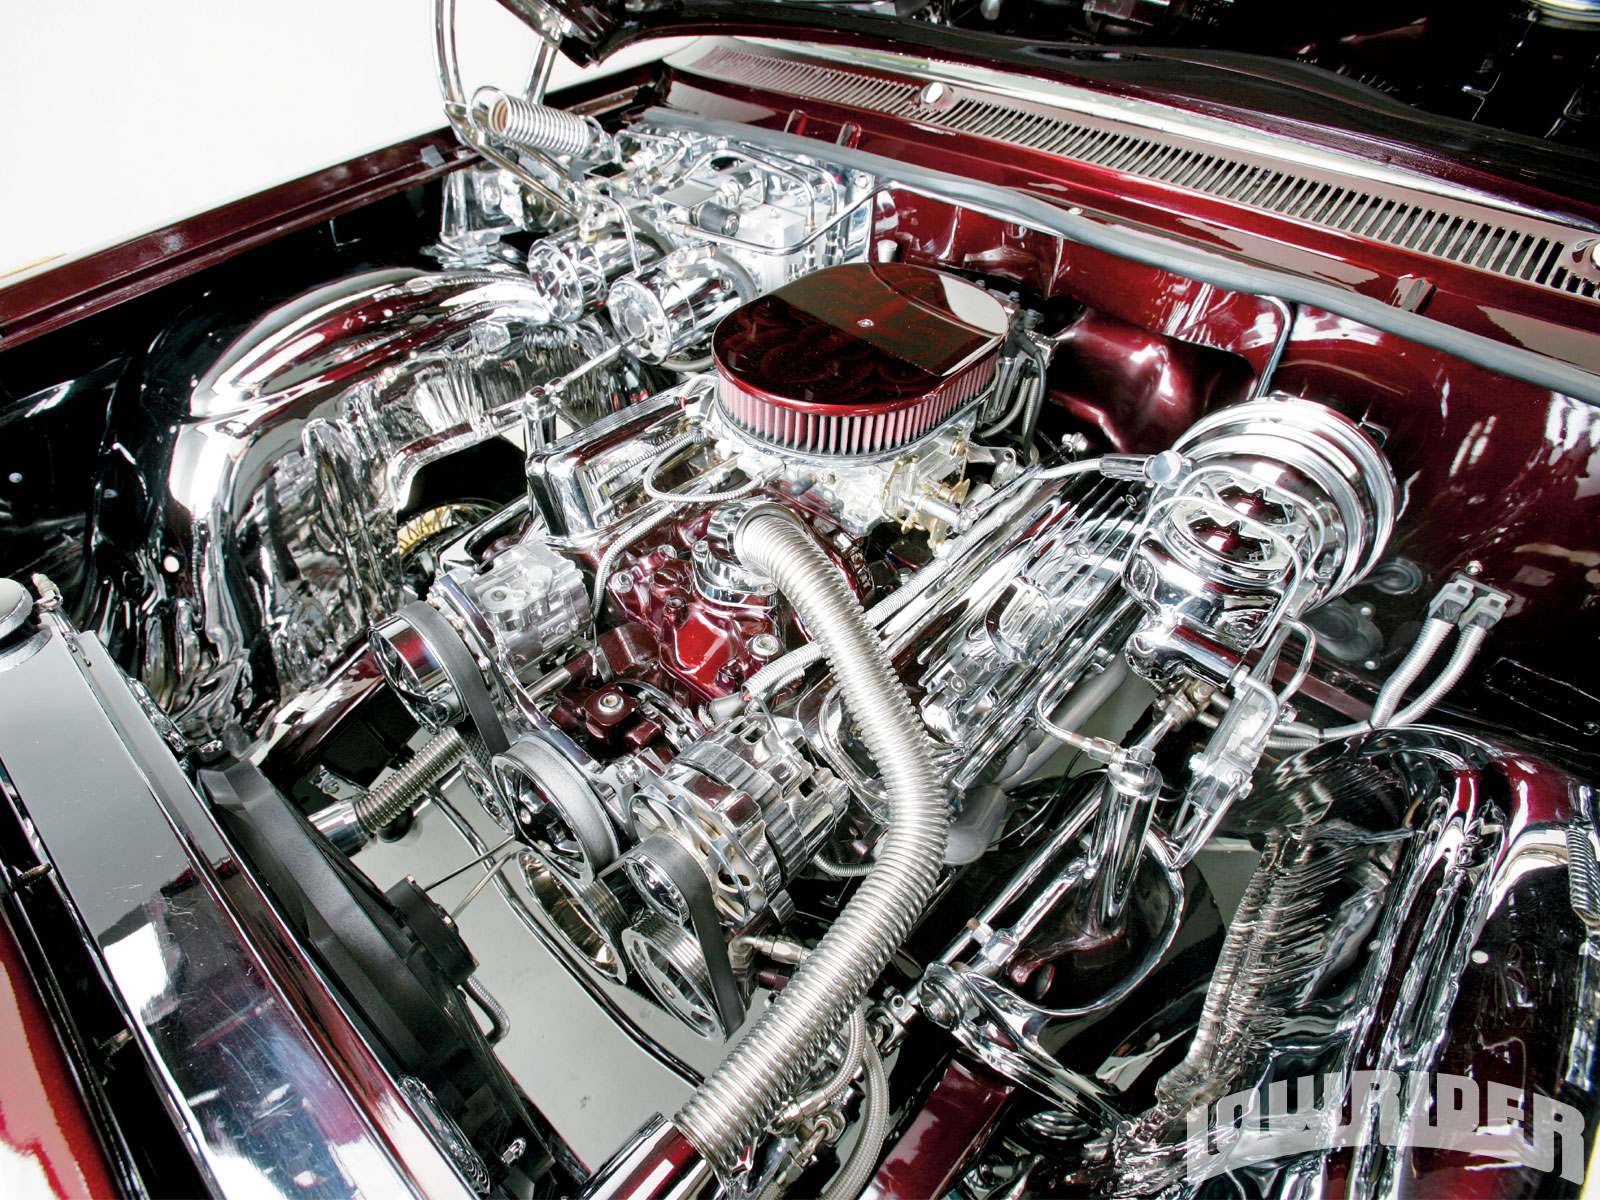 1966 Chevy Impala Engine Compartment Chevrolet Convertible Lowrider Magazine 1600x1200